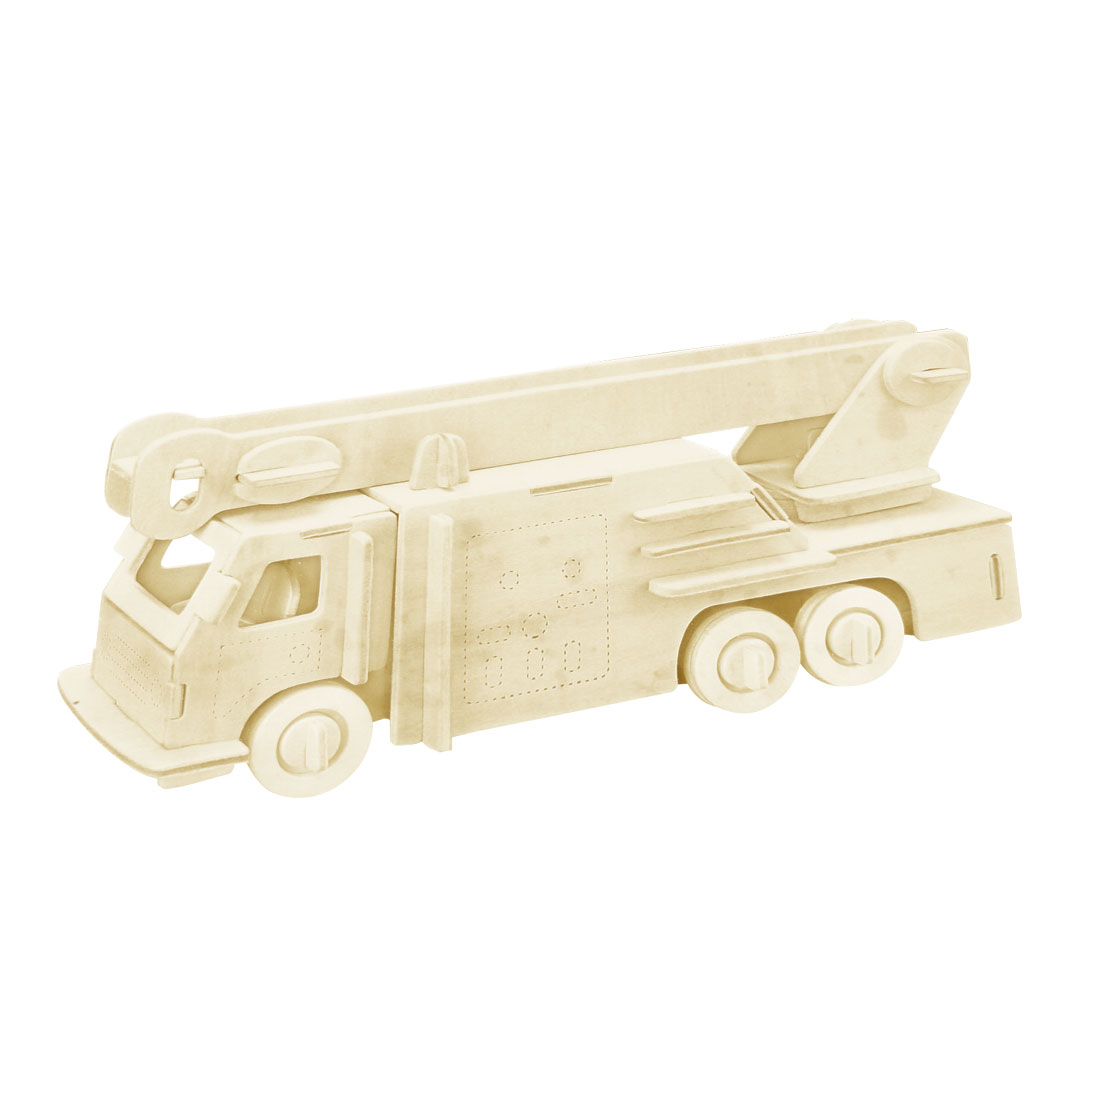 Beige 3D Wooden Fire Engine Model Woodcraft Construction Kit Puzzle Toy